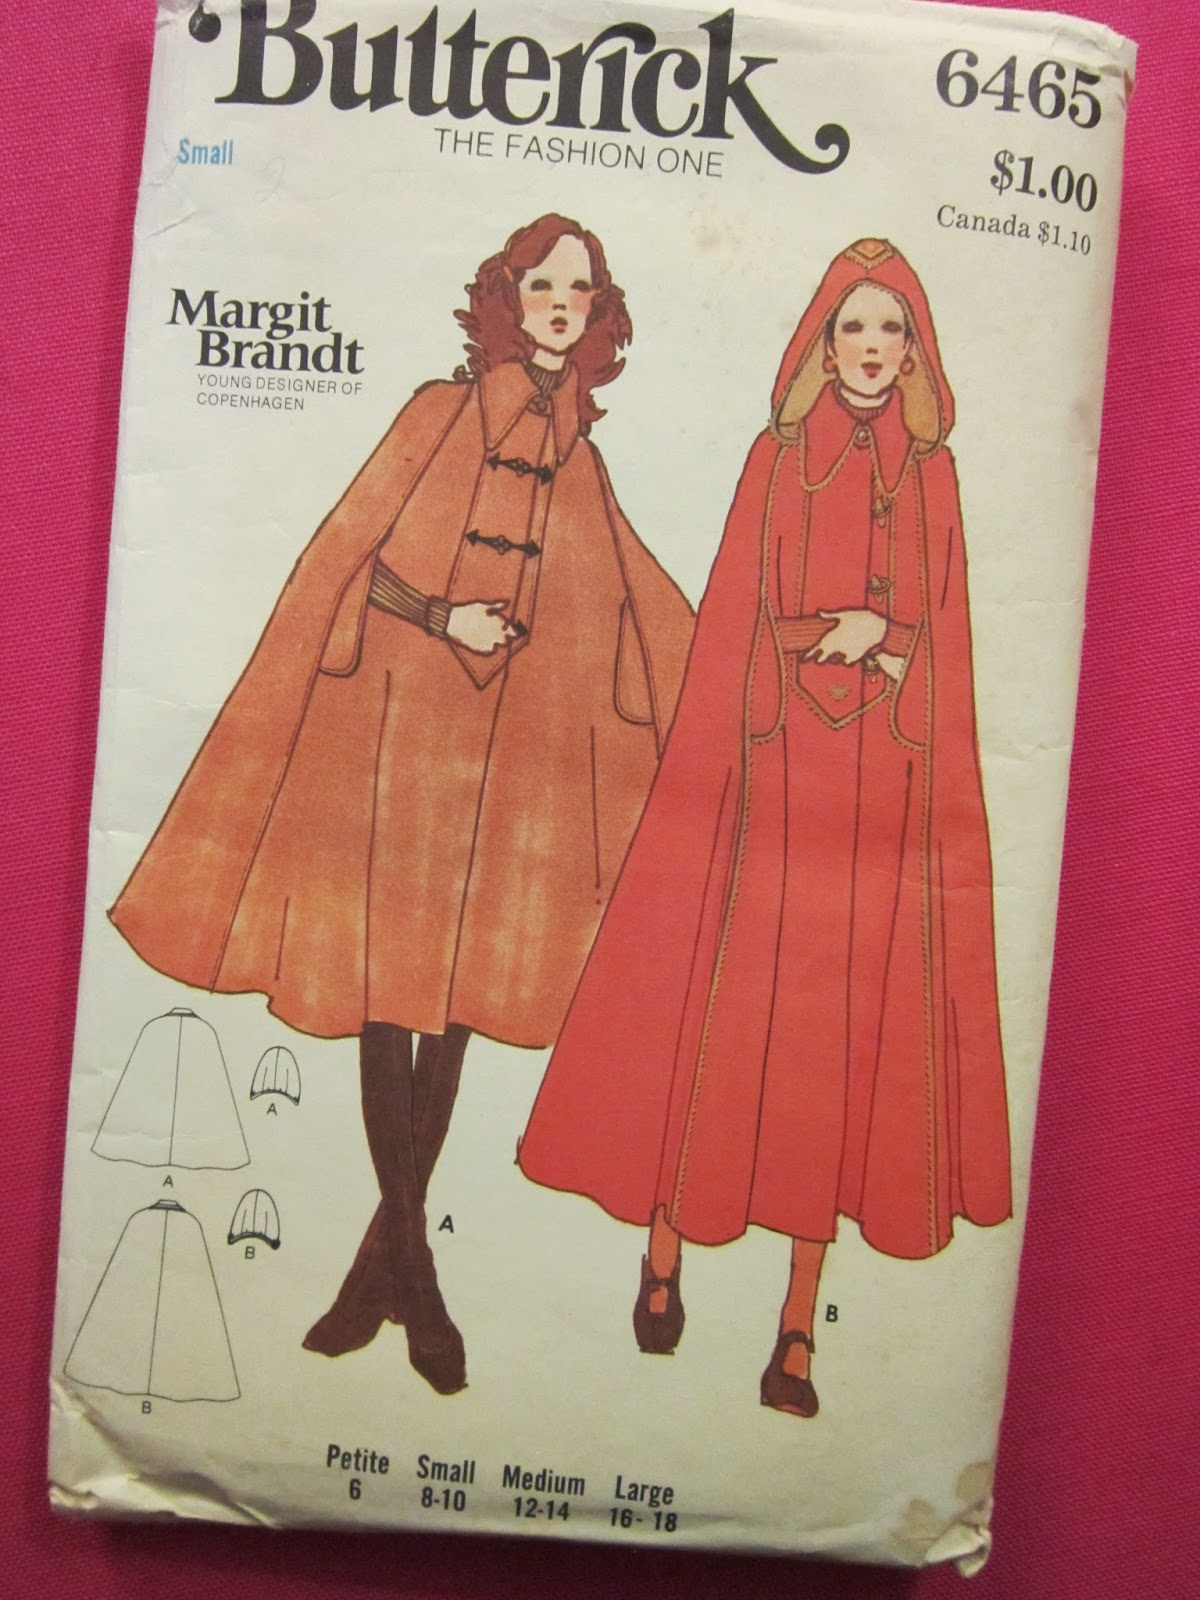 Margit Brandt Shop by Margit Brandt Young